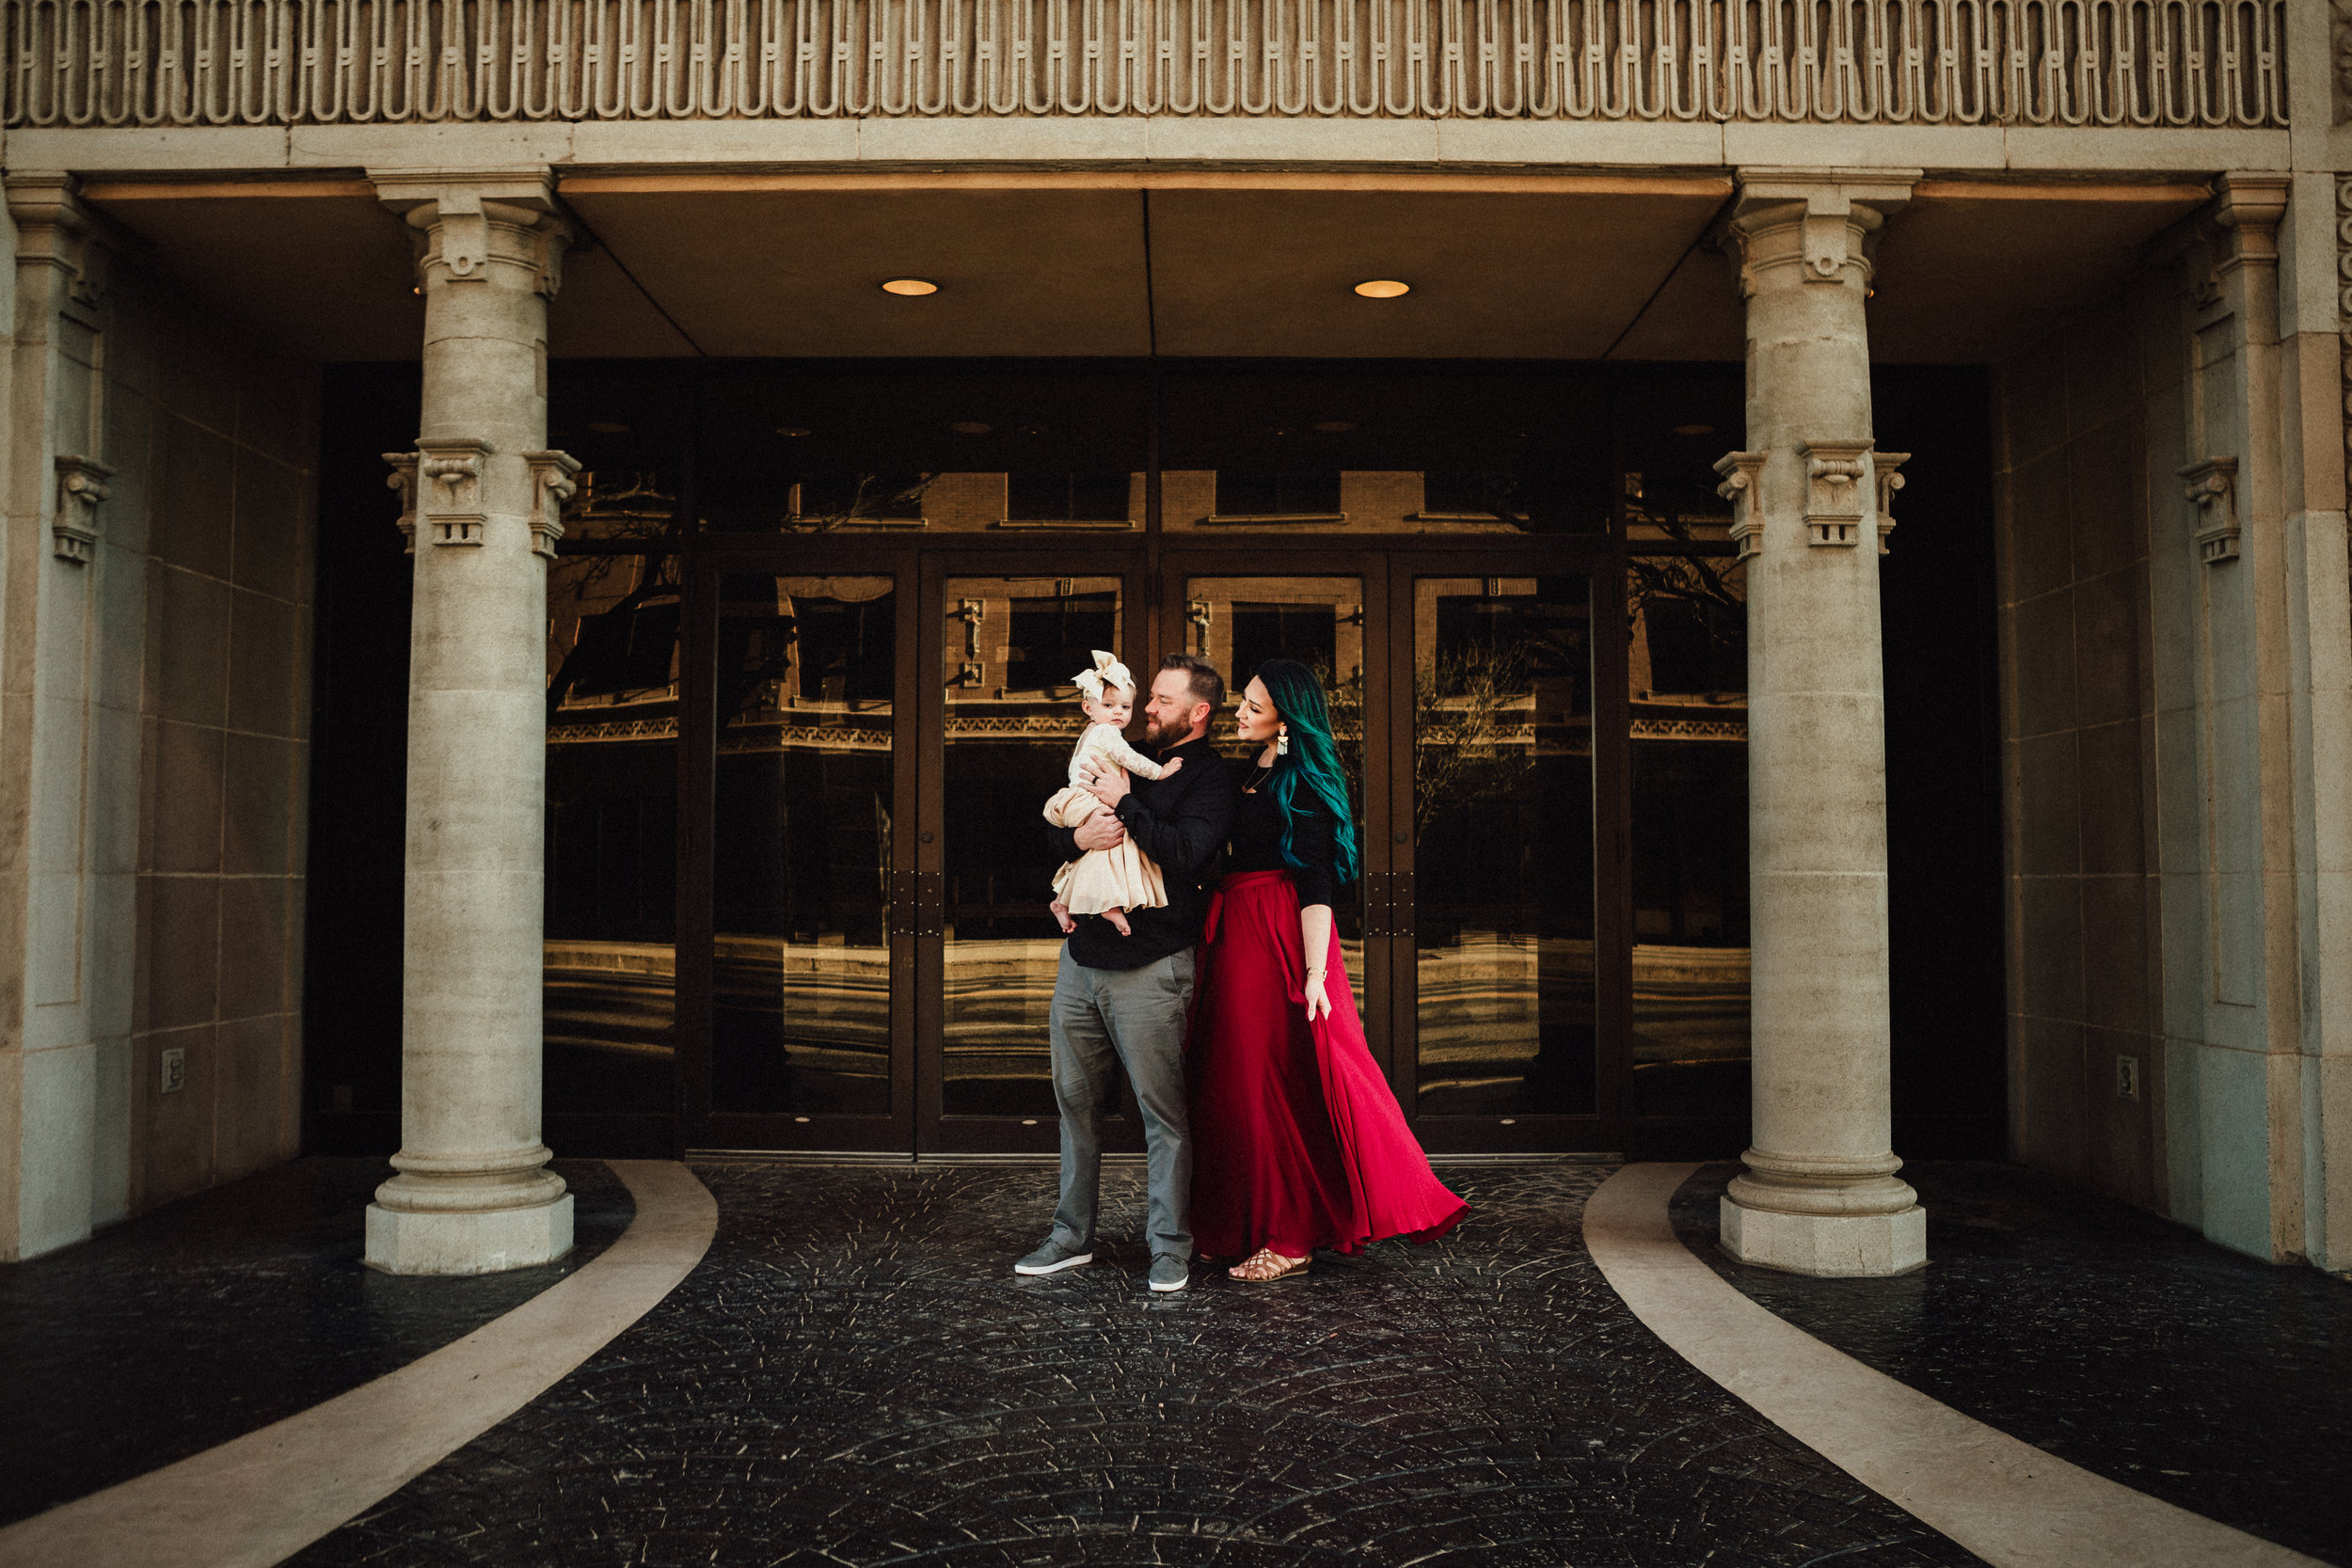 Distance photo of family of three in front of downtown building ruby red dress and neutral dress for the little one #rubyred #familyphotos #downtown #hairstyle #personality #amarillotexas #familyphotographer #lifestylephotos #amarillophotographer #locationchoice #texasfamilyphotos #familyofthree